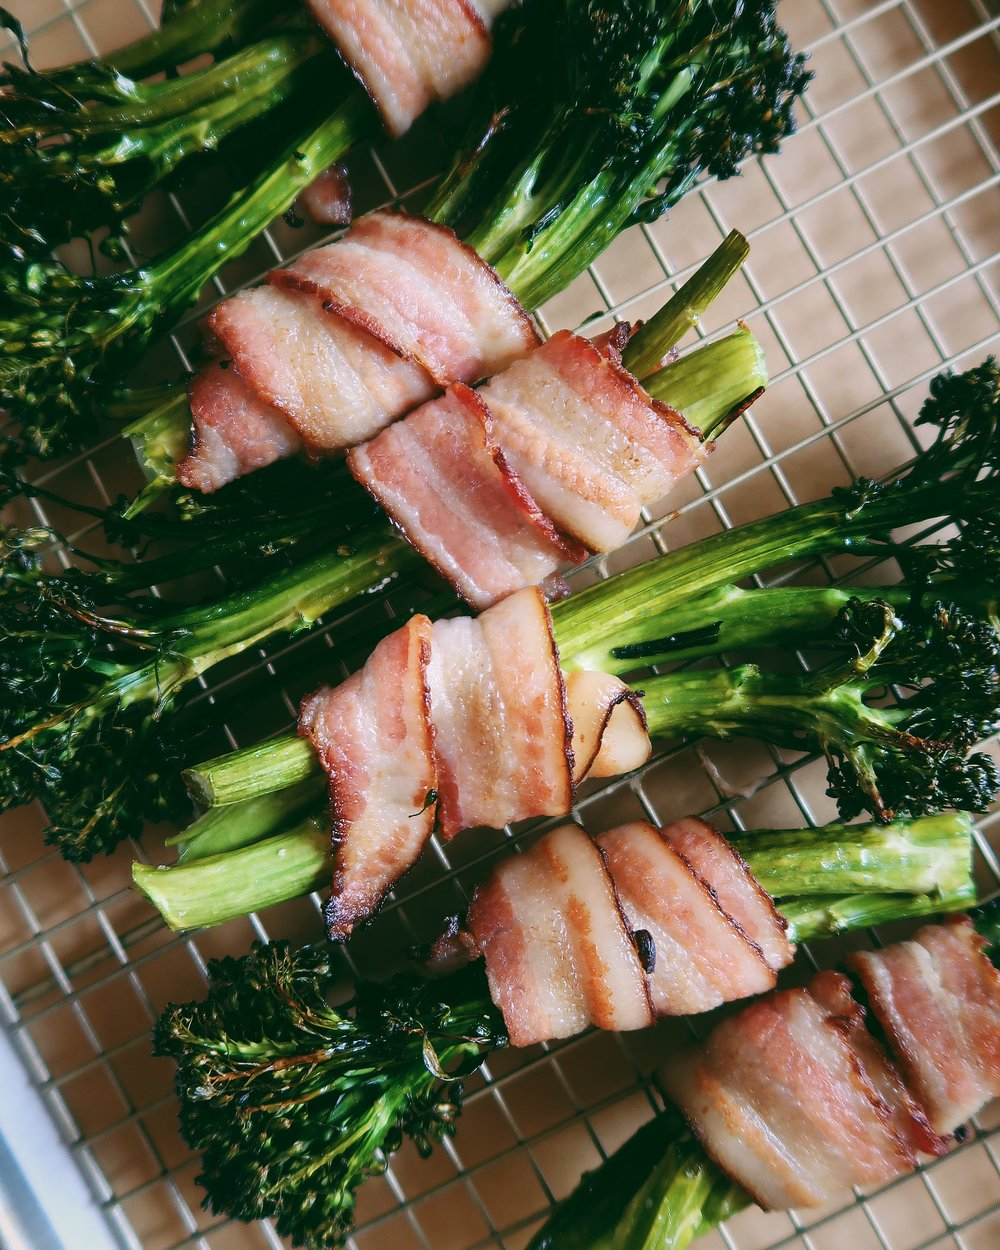 BACON WRAPPED BROCCOLINI - INGREDIENTStwo bunches organic broccolini 3 tb olive oil8 slices sugar-free baconsalt and pepper to taste